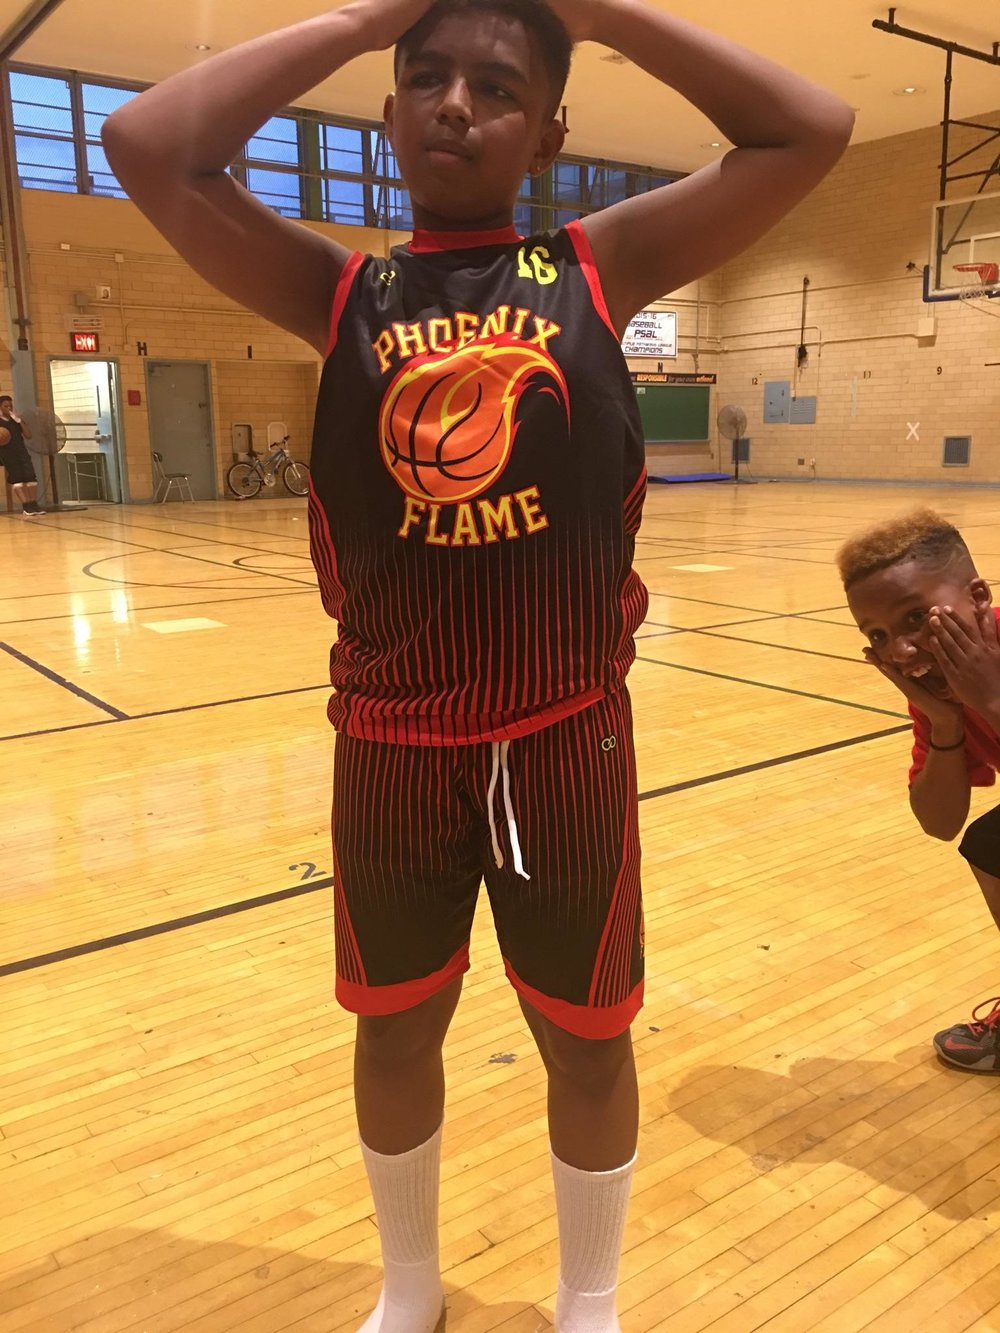 PHOENIX FLAME  red black yellow basketball uniforms jersey shirts, shorts